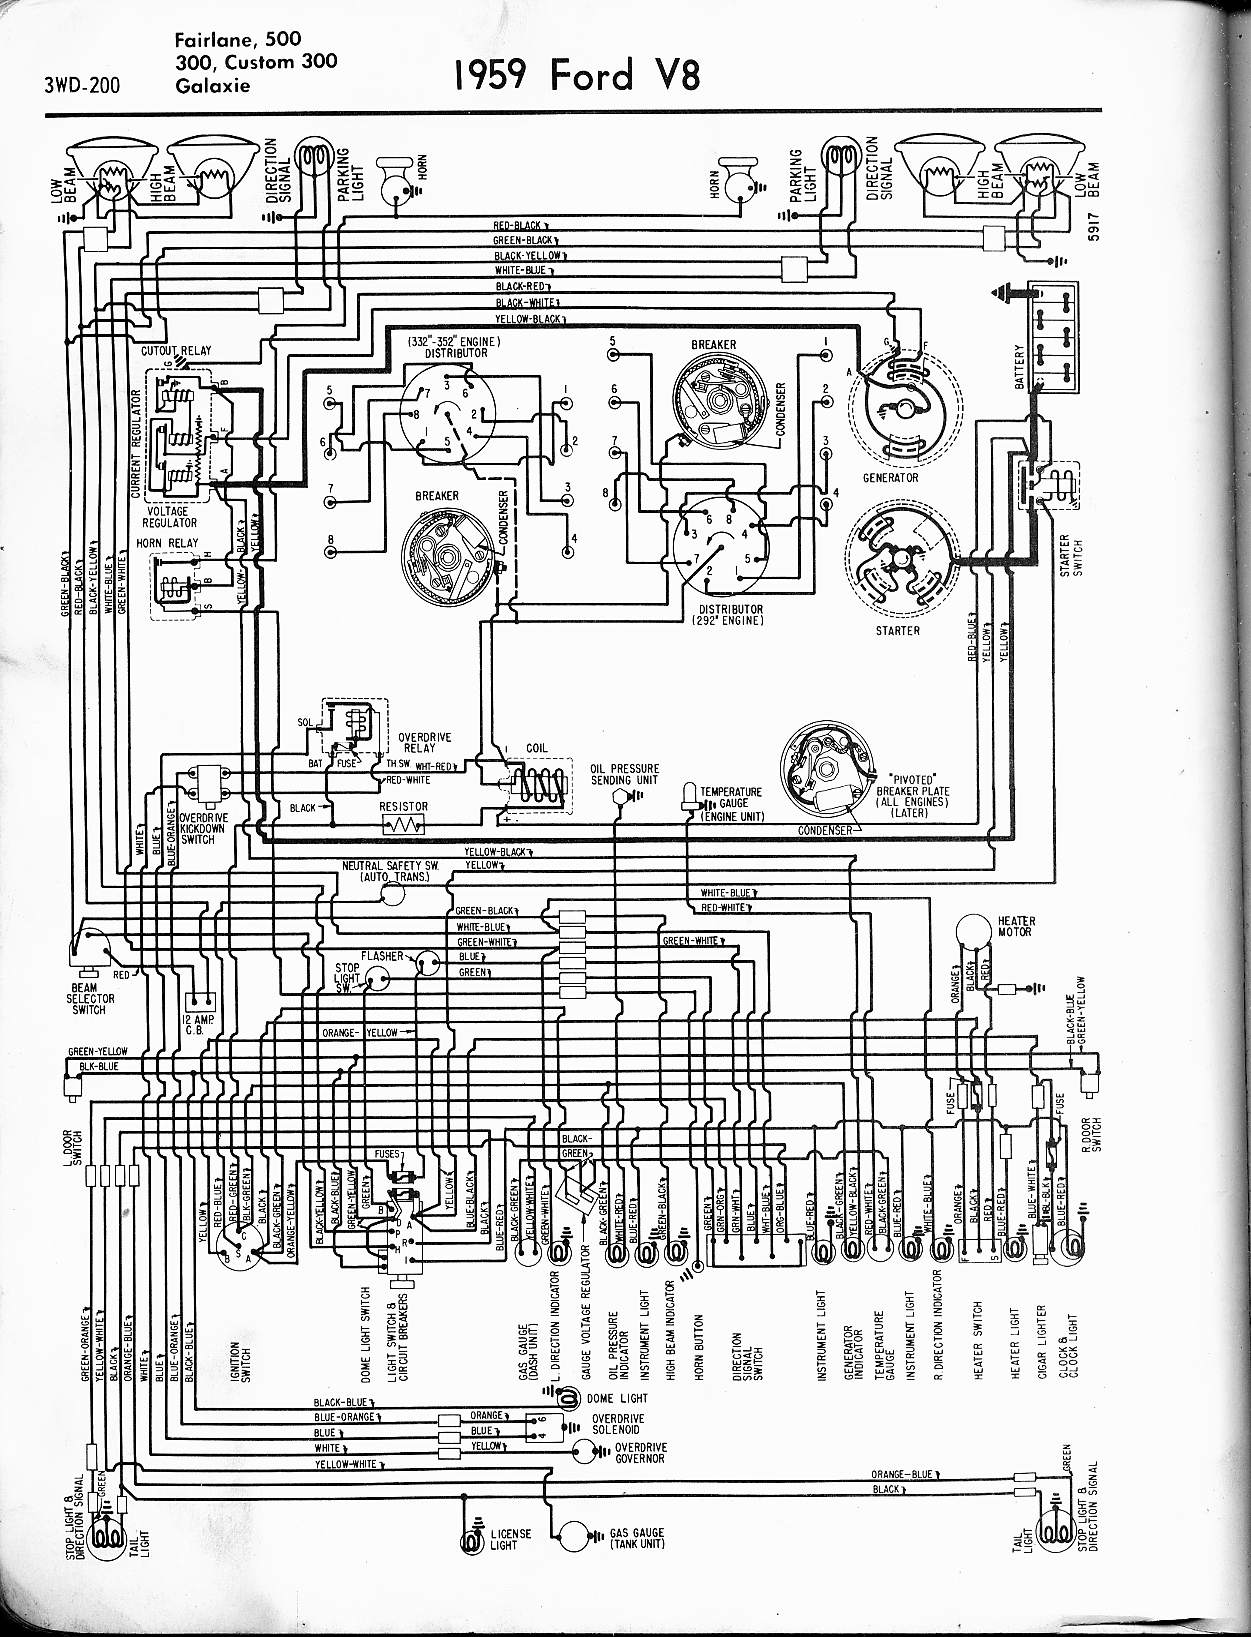 Swell 57 65 Ford Wiring Diagrams Wiring Cloud Philuggs Outletorg